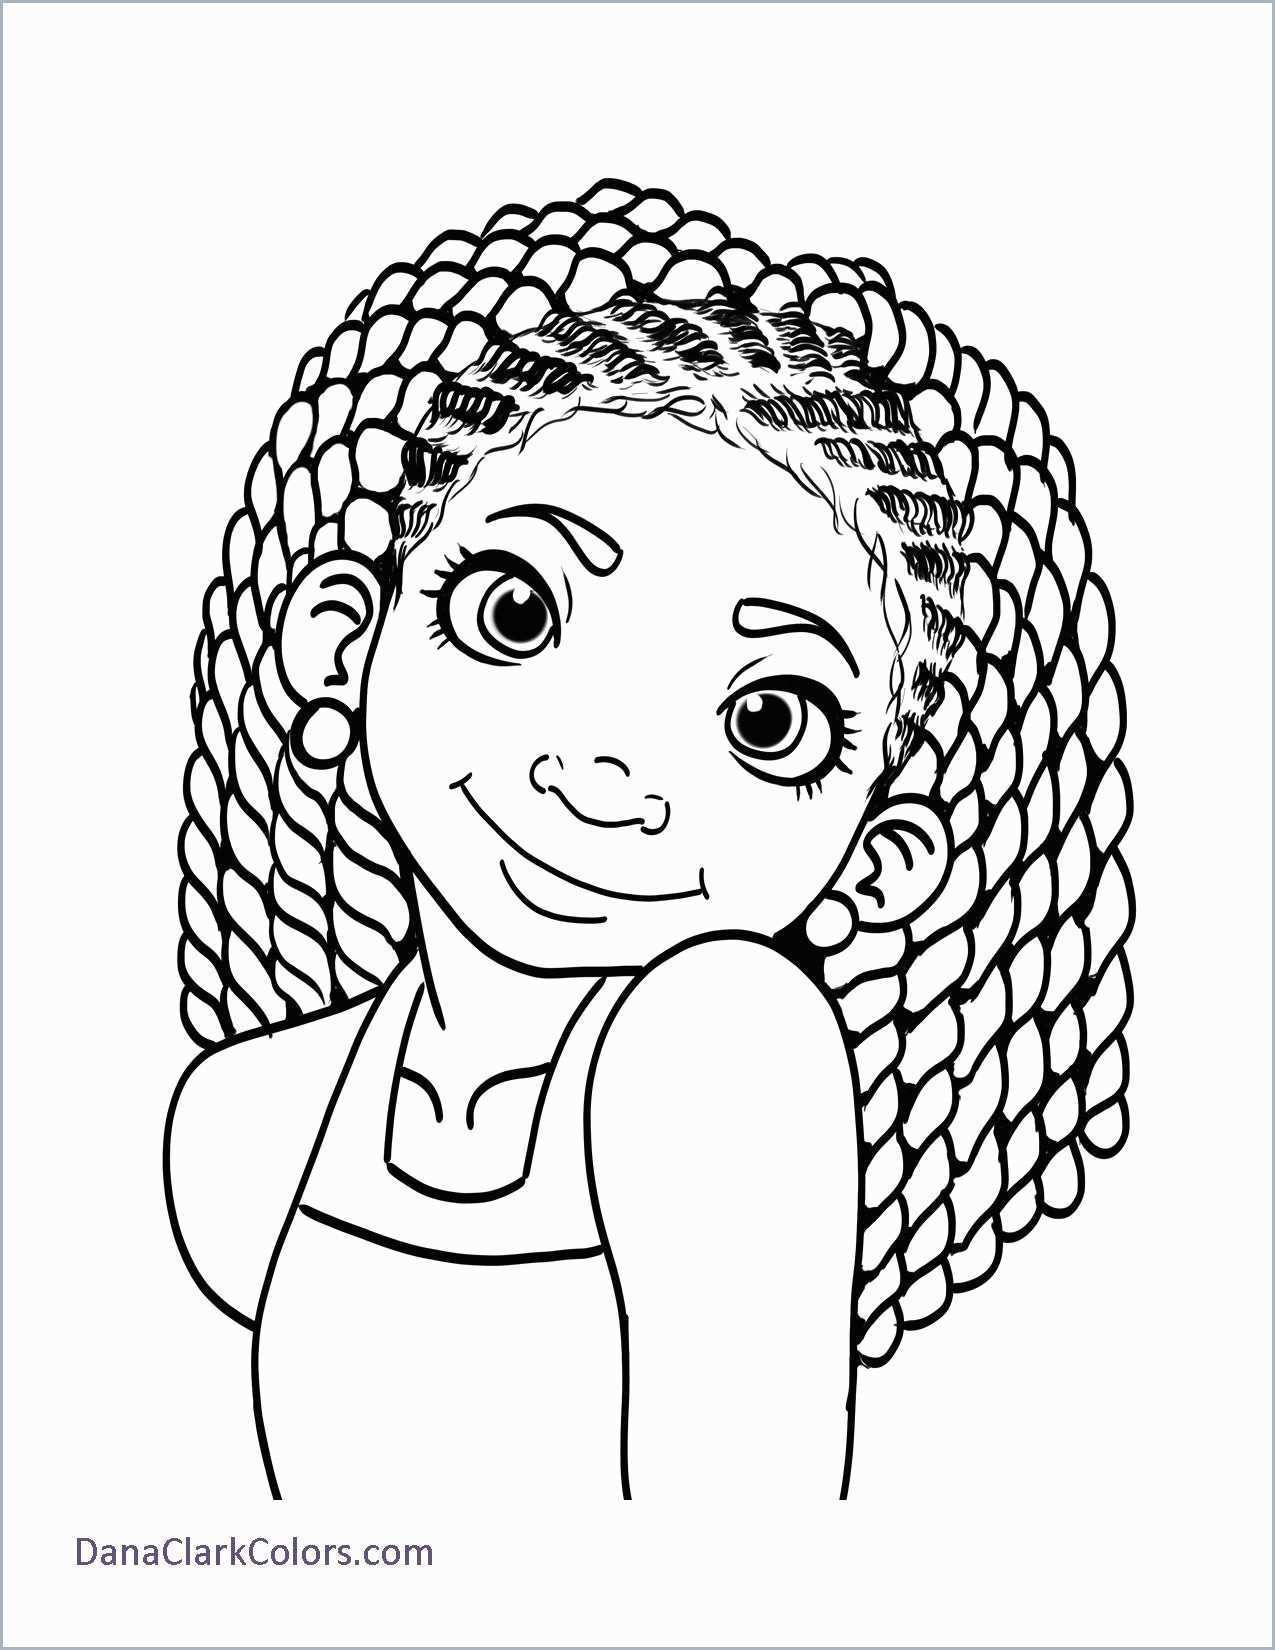 Girl Hair Coloring Page Barbie Coloring Pages Drawings Of Black Girls Coloring Pages For Girls